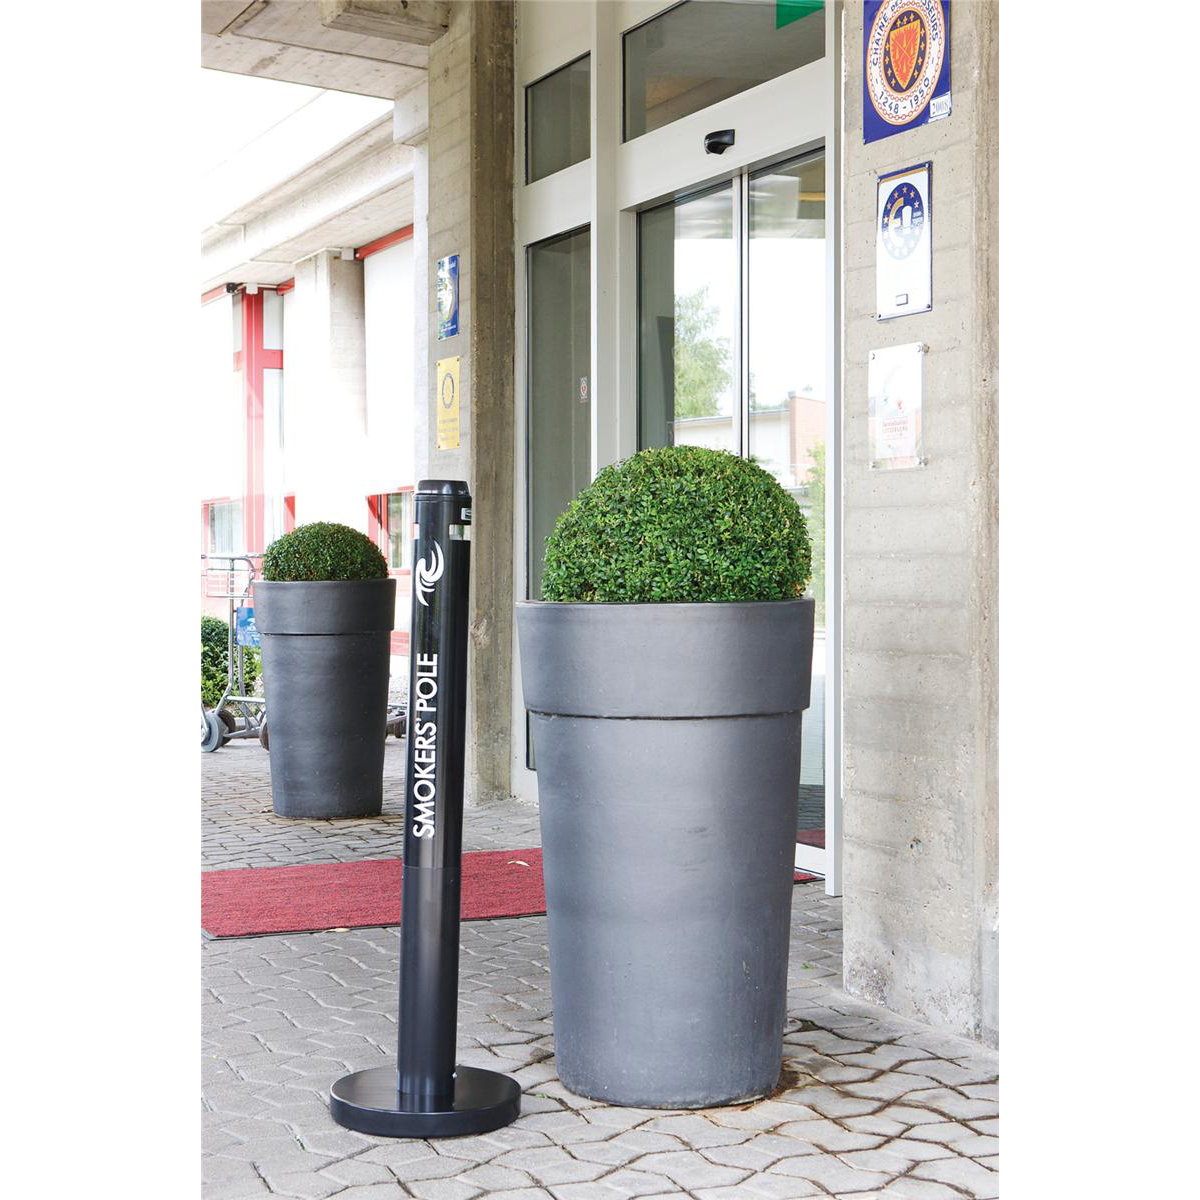 Rubbermaid Smokers Pole Bin Capacity 1000 Butts Base Diameter of 324mm Height of 1041mm Black Ref FGR1BK